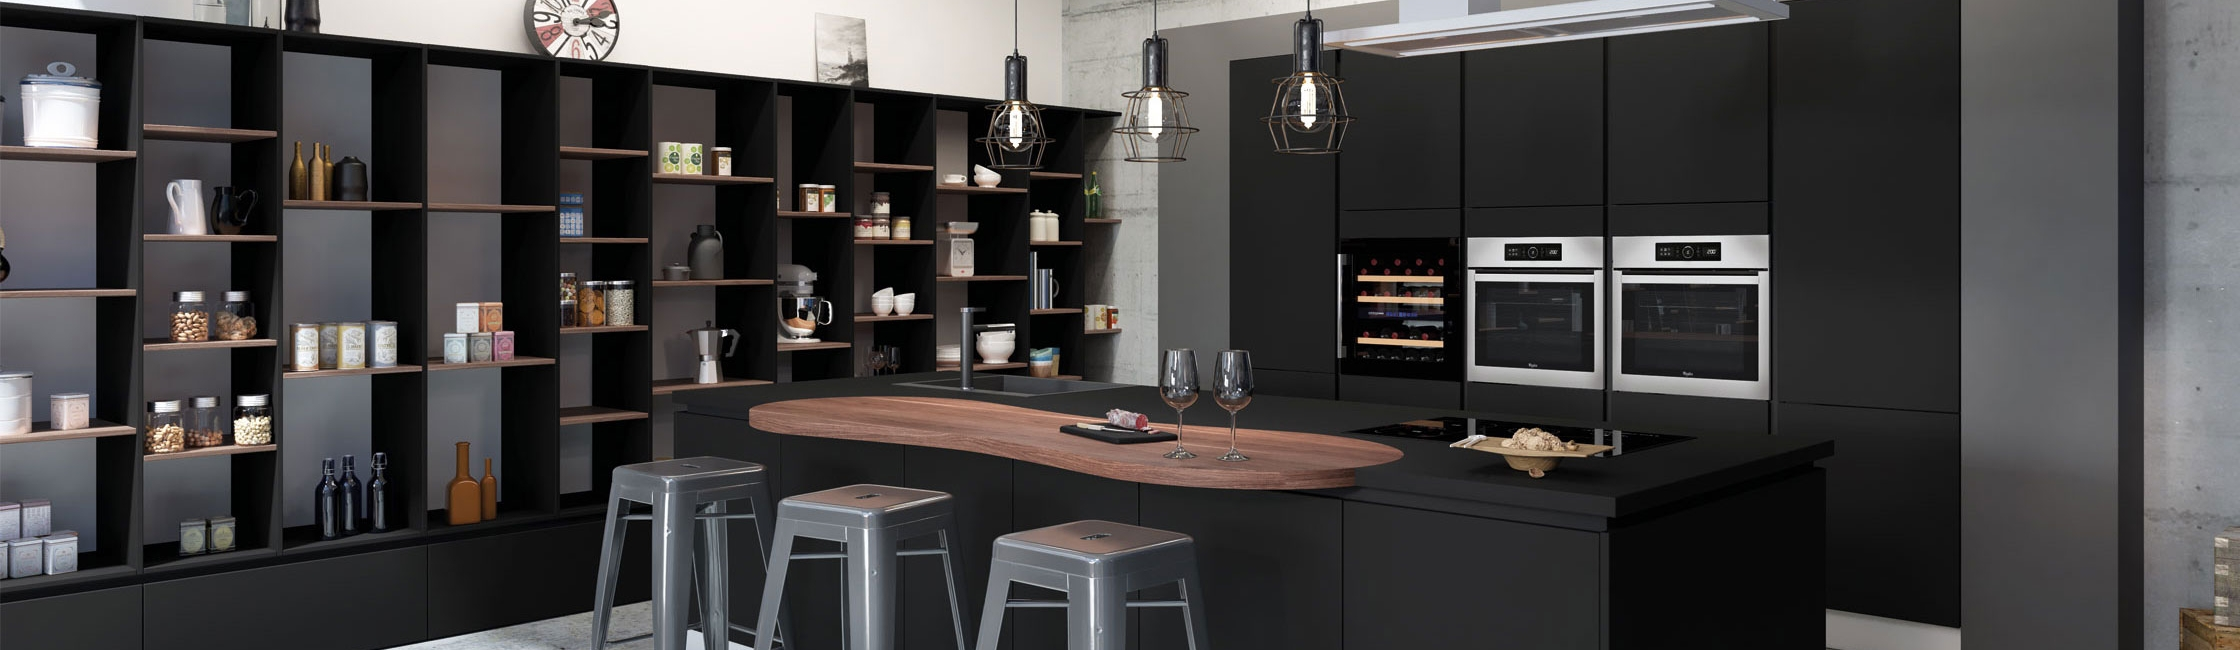 les cuisines en strastifi comera cuisines. Black Bedroom Furniture Sets. Home Design Ideas